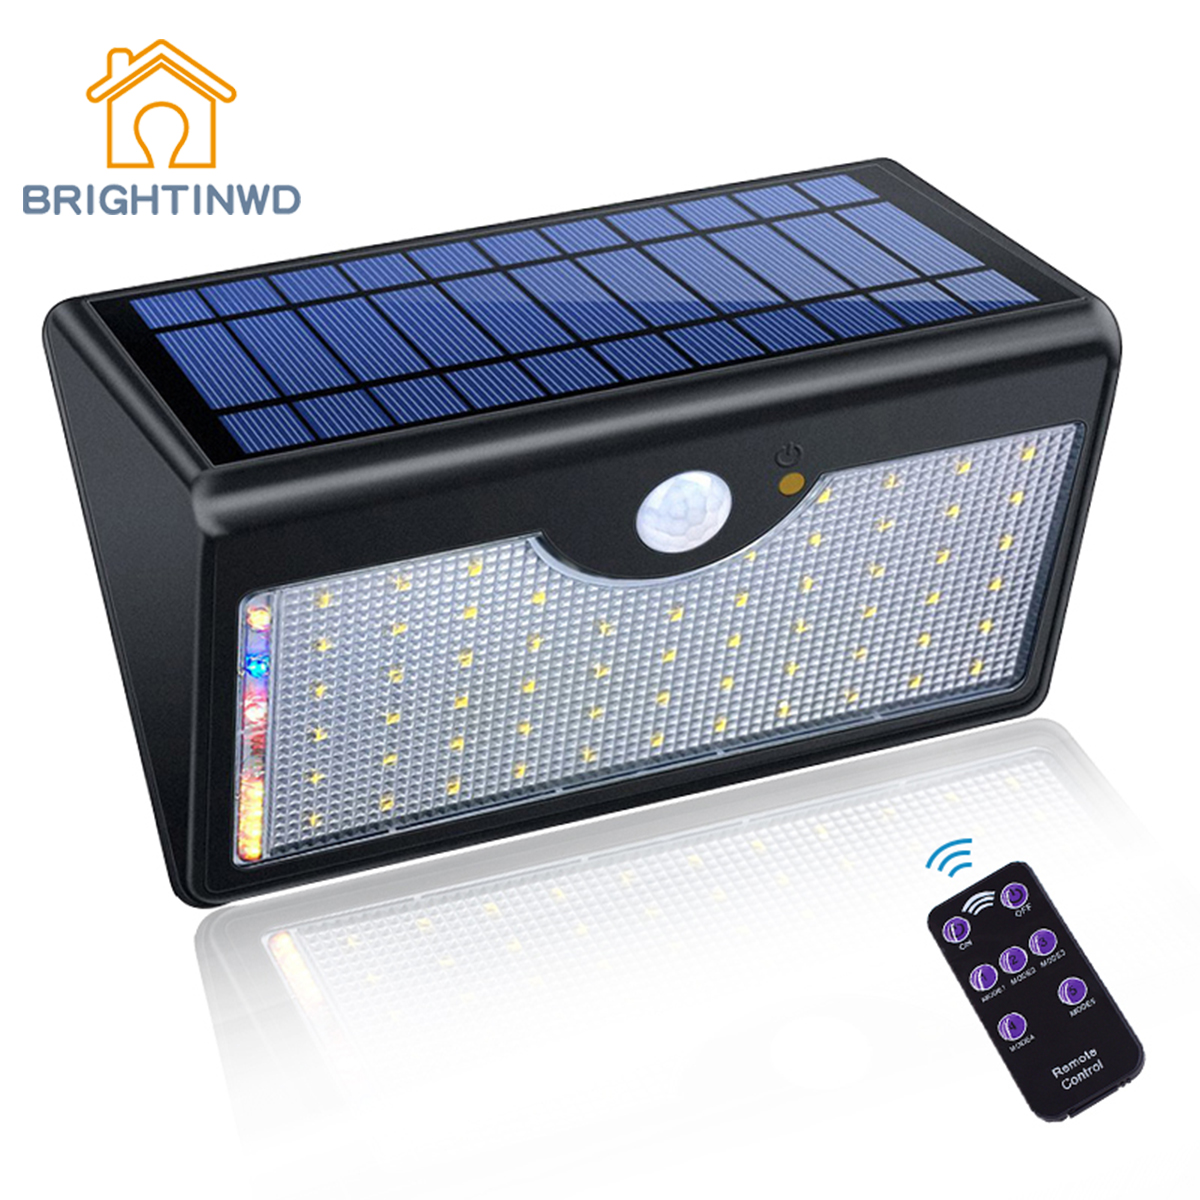 1300lm Super Bright Upgraded Lamp Lights For Outdoor Wall Yard Garden With Five Modes In One Solar Lamps 60 LED Solar Light